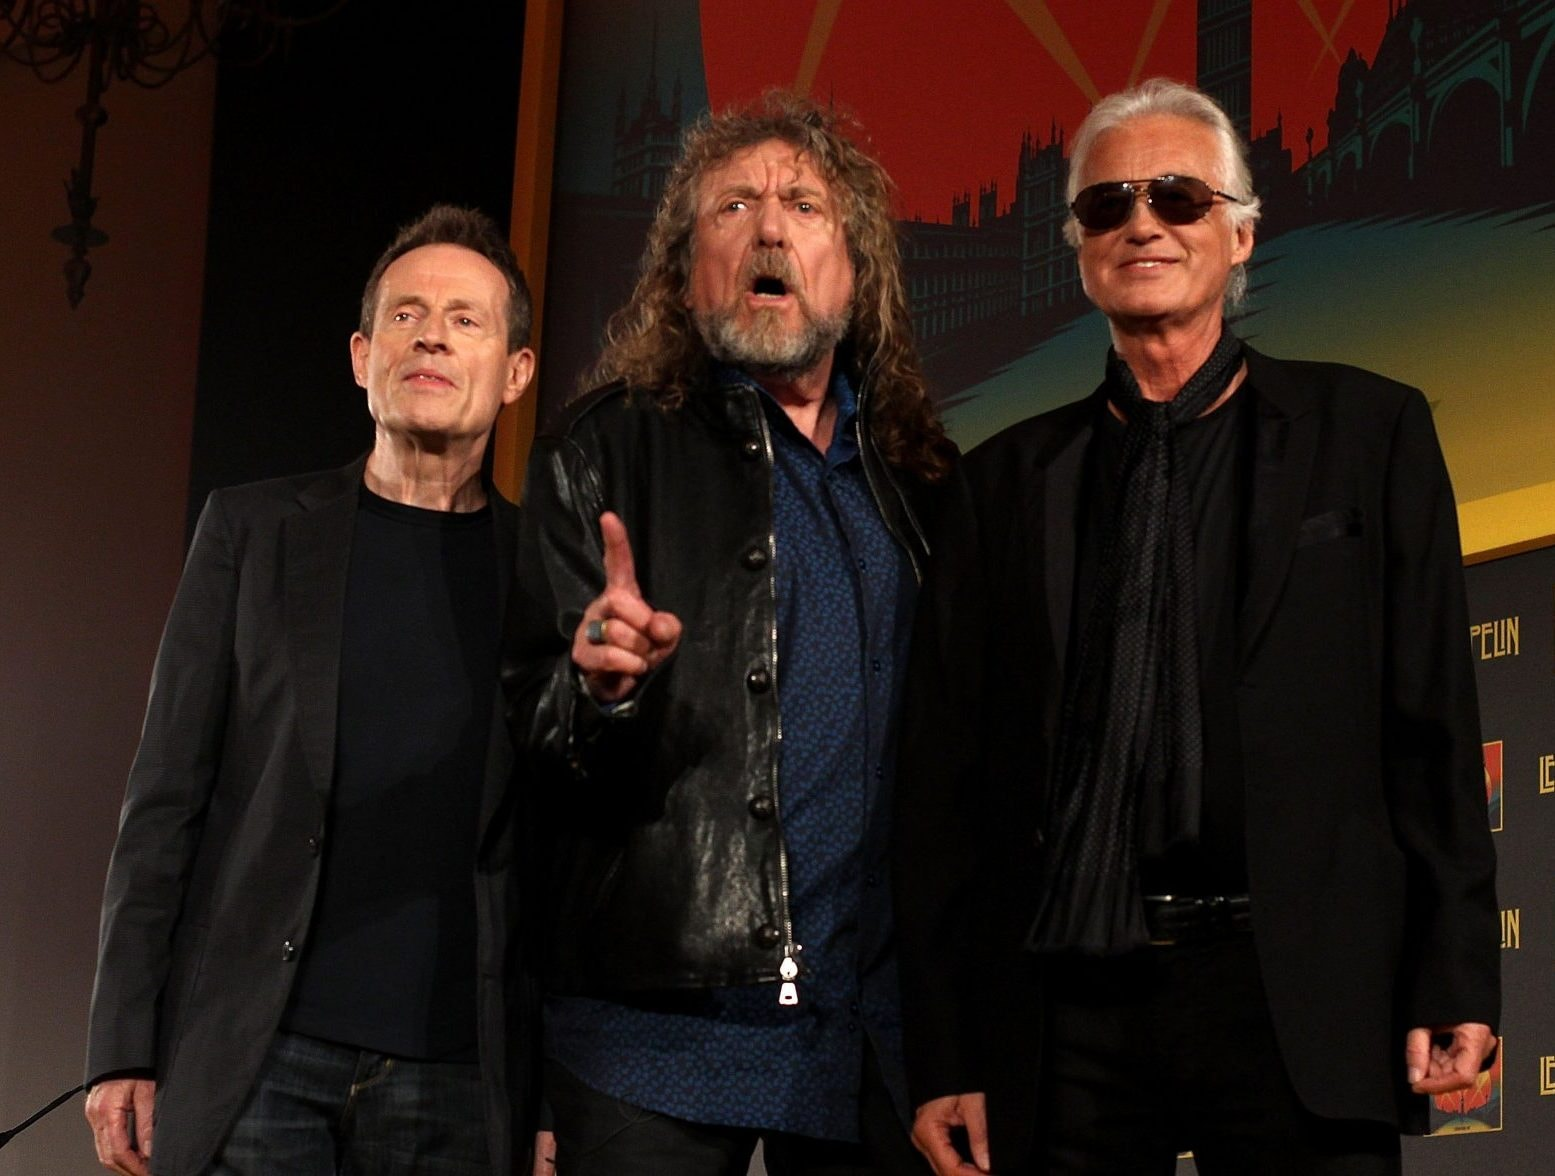 Led Zeppelin 'Stairway' Lawsuit: Over 120 Artists Back Band